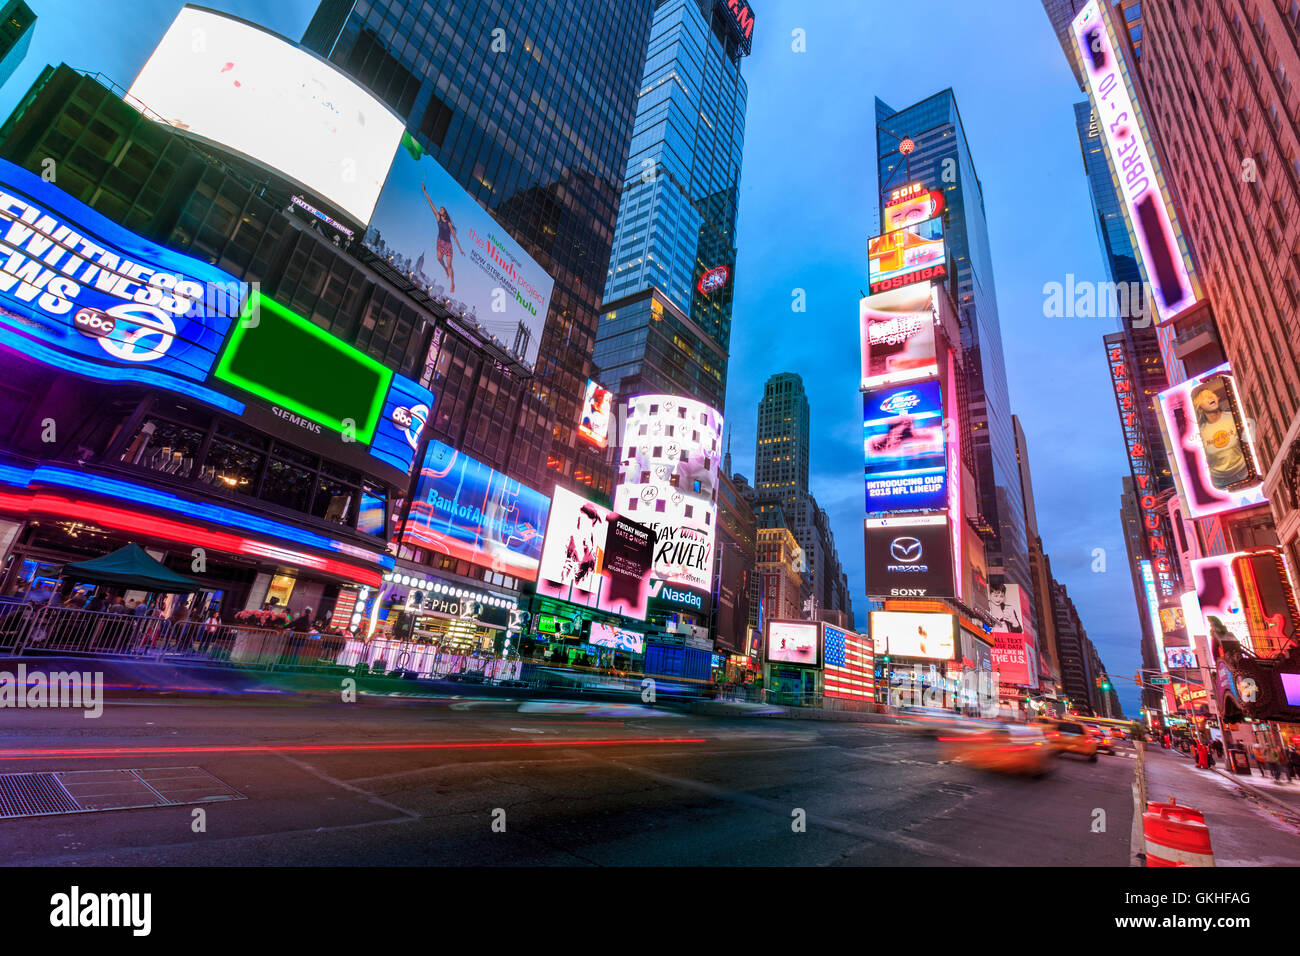 USA, New York, New York, Times Square Photo Stock